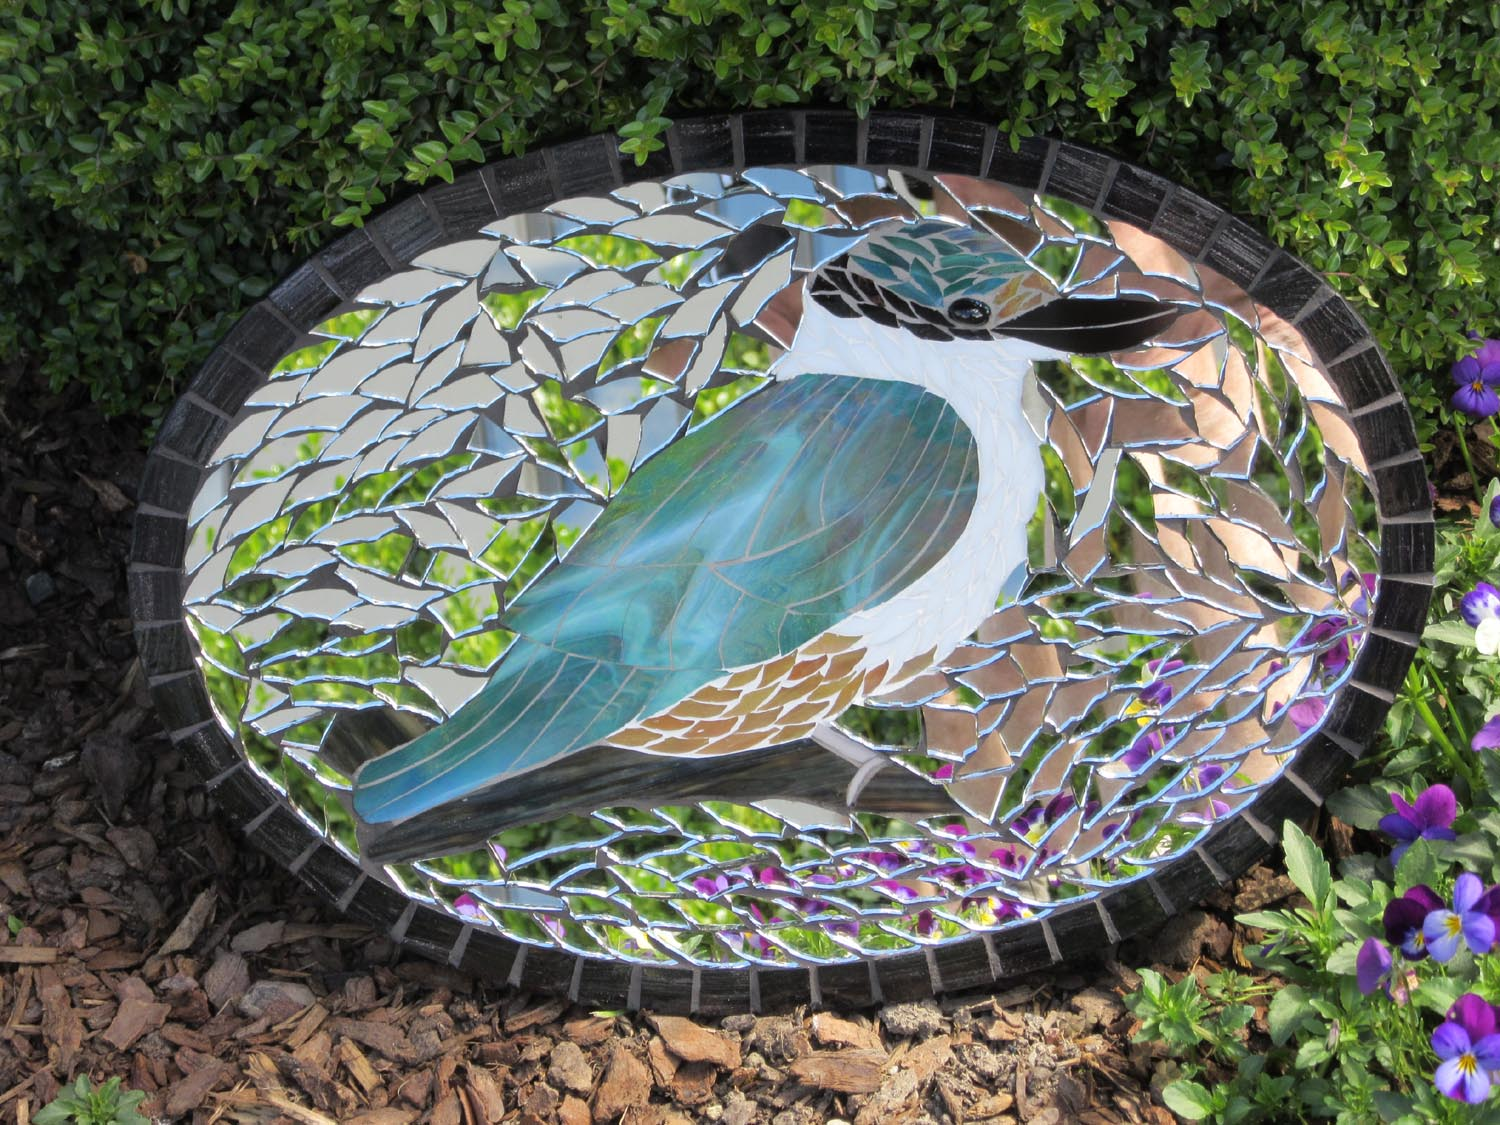 Sharon Carroll glass mosaic kingfisher mirror garden art